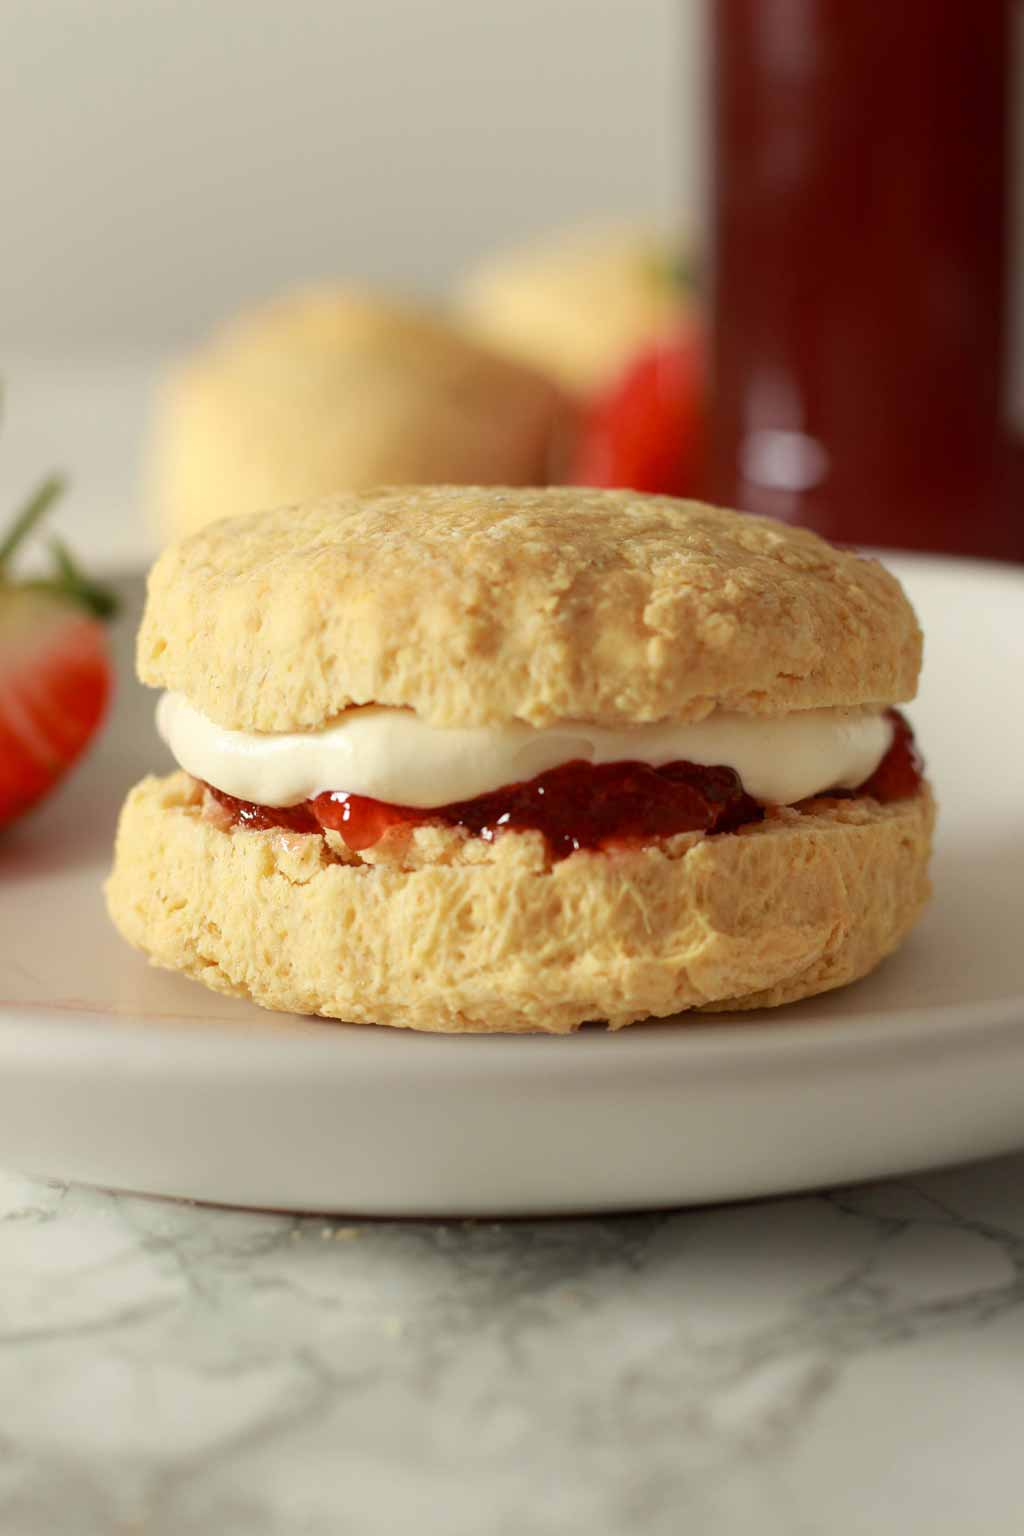 Scone Filled With Jam And Cream